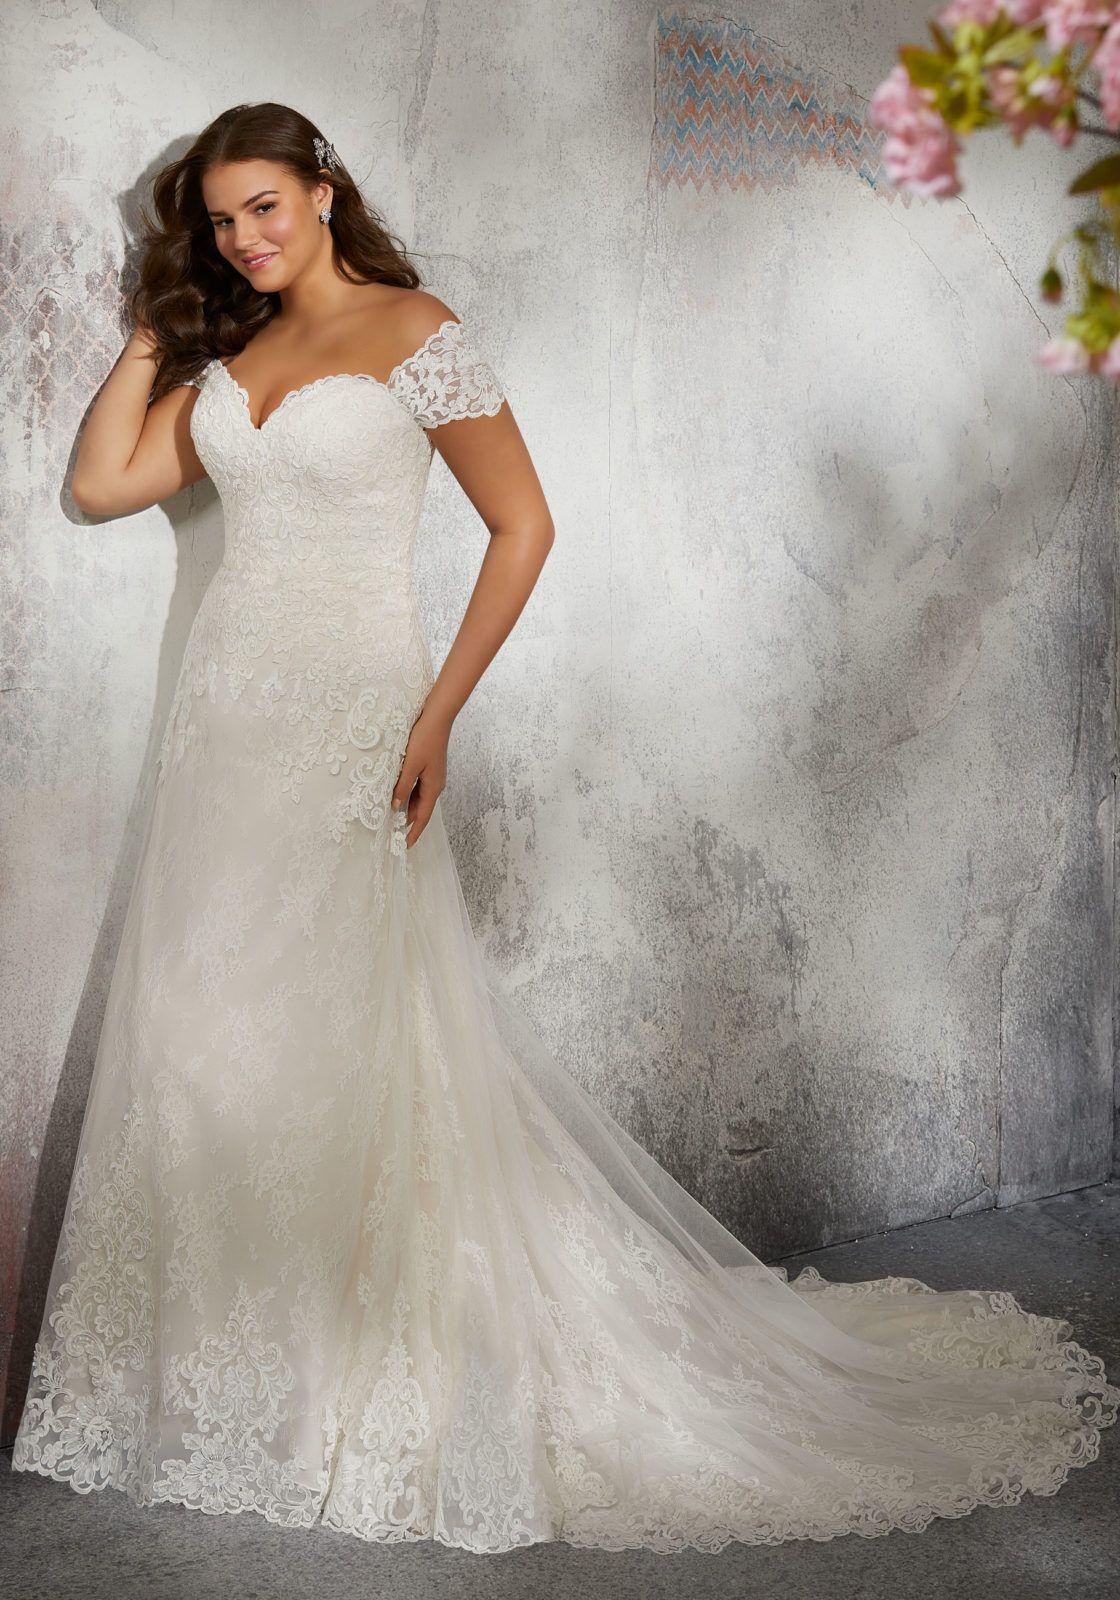 Laverna wedding dress timeless chantilly lace bridal gown accented